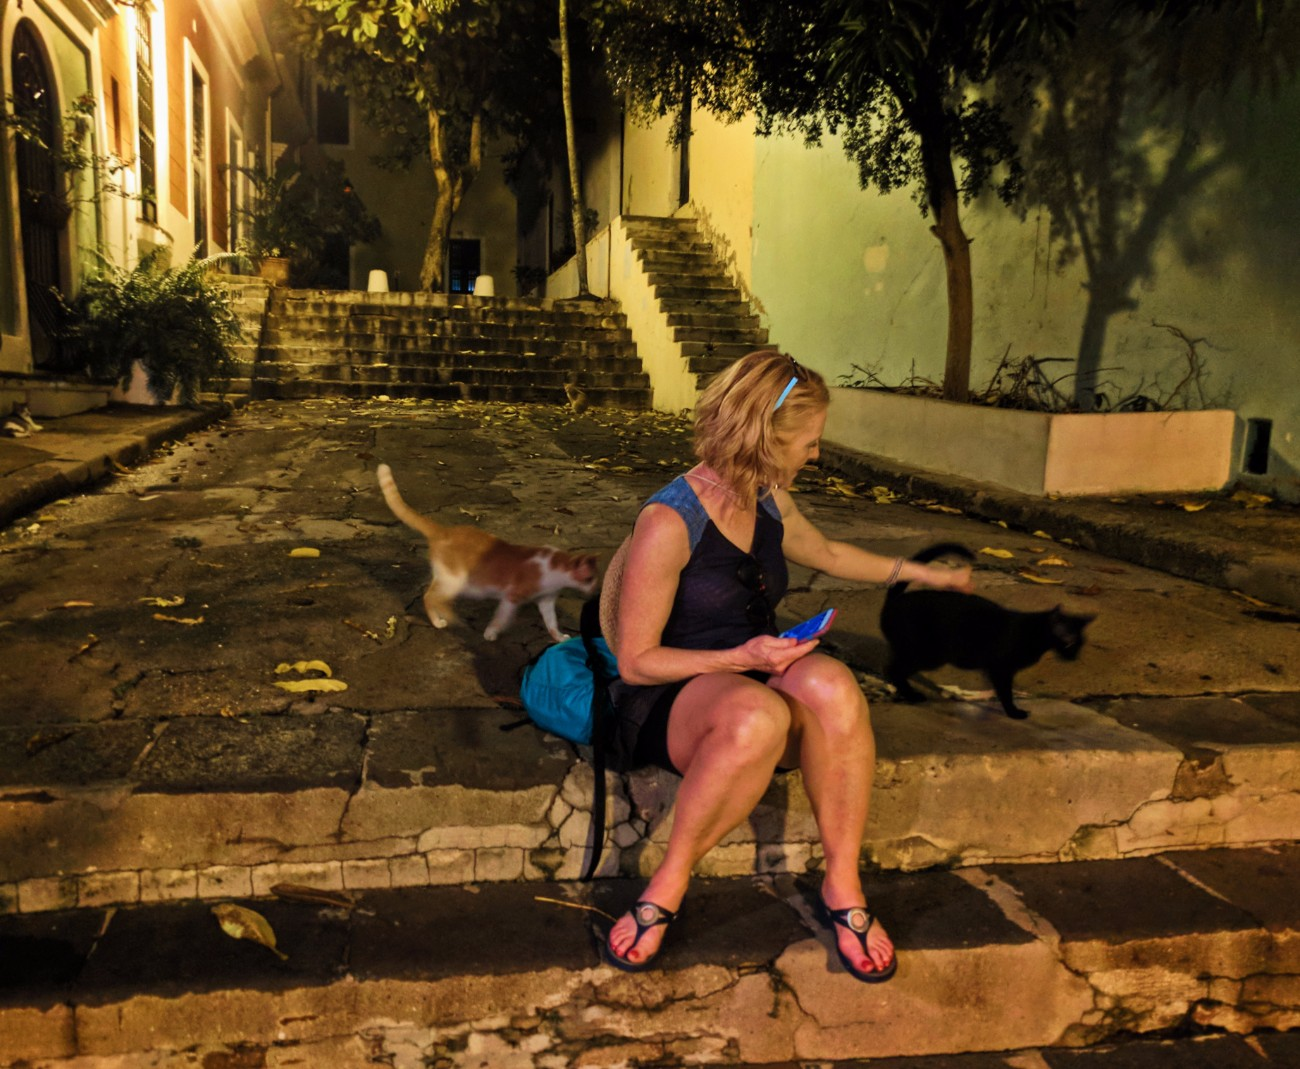 Maureen with Cats on Callejon Hospital in Old San Juan Puerto Rico at night 1